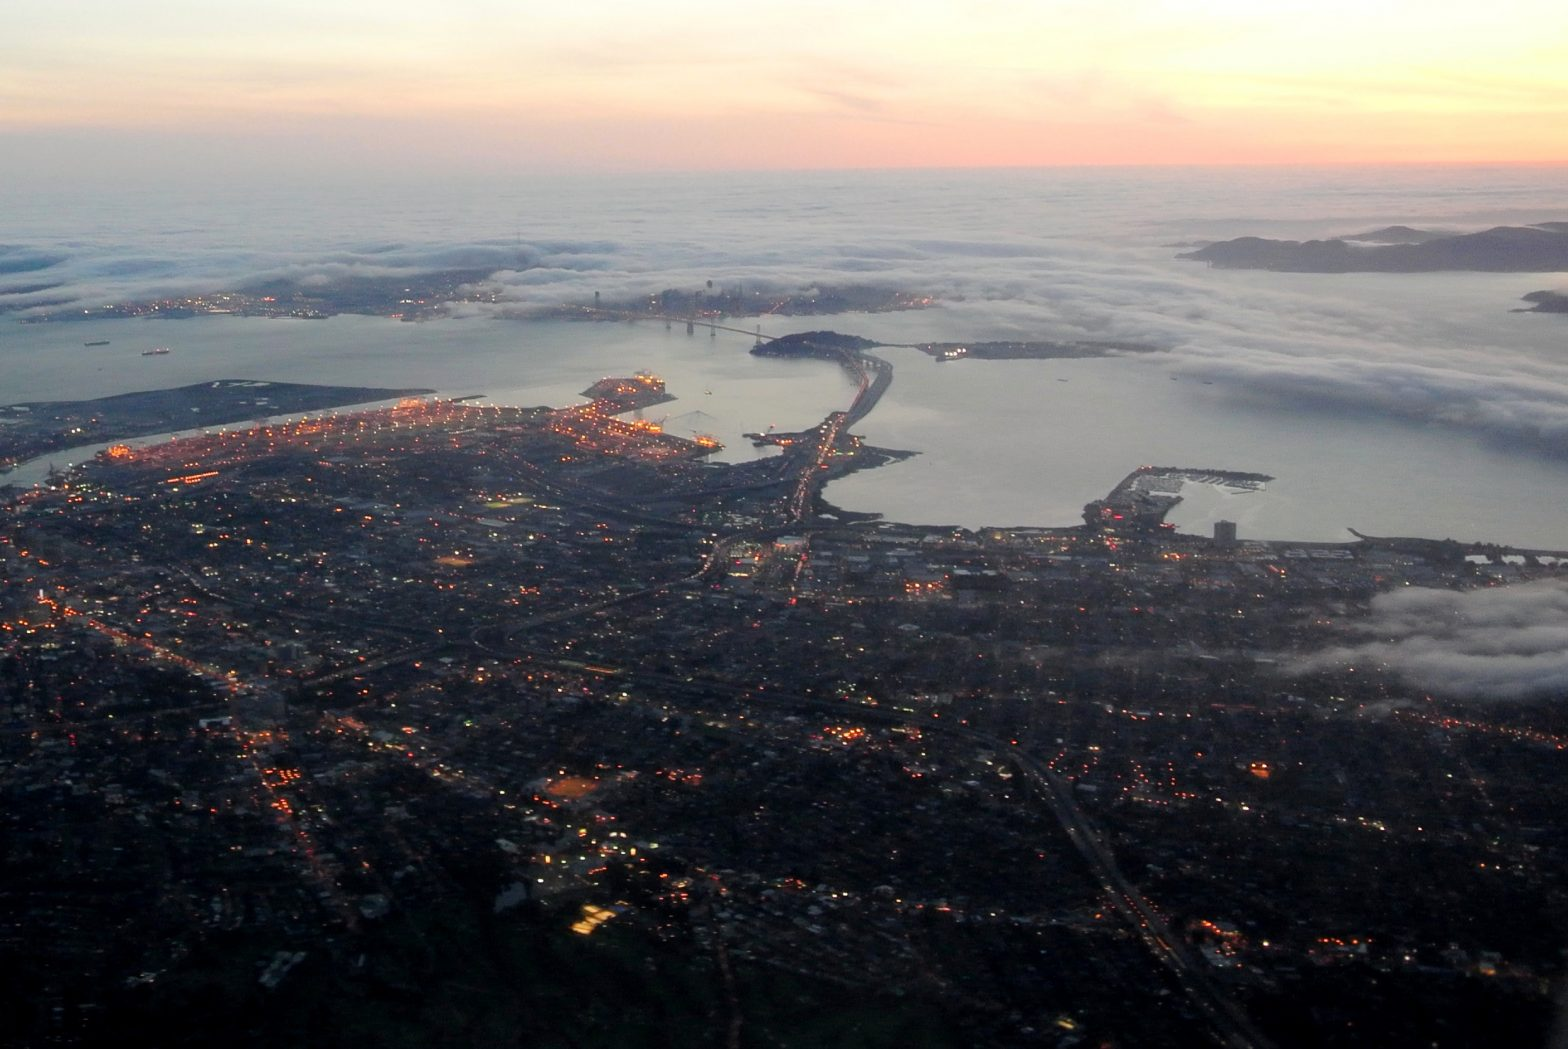 east_bay_aerial_twilight.jpg